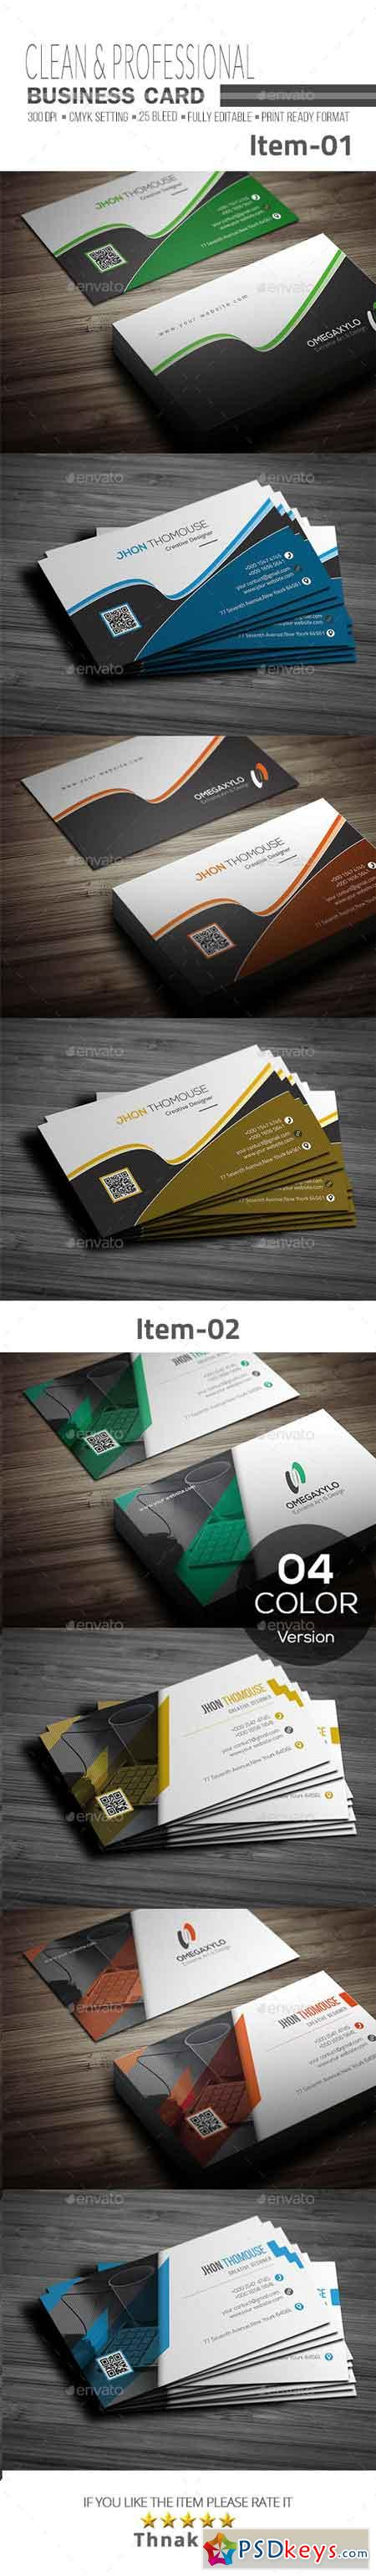 Business Card Bundle 2 In 1 20568289